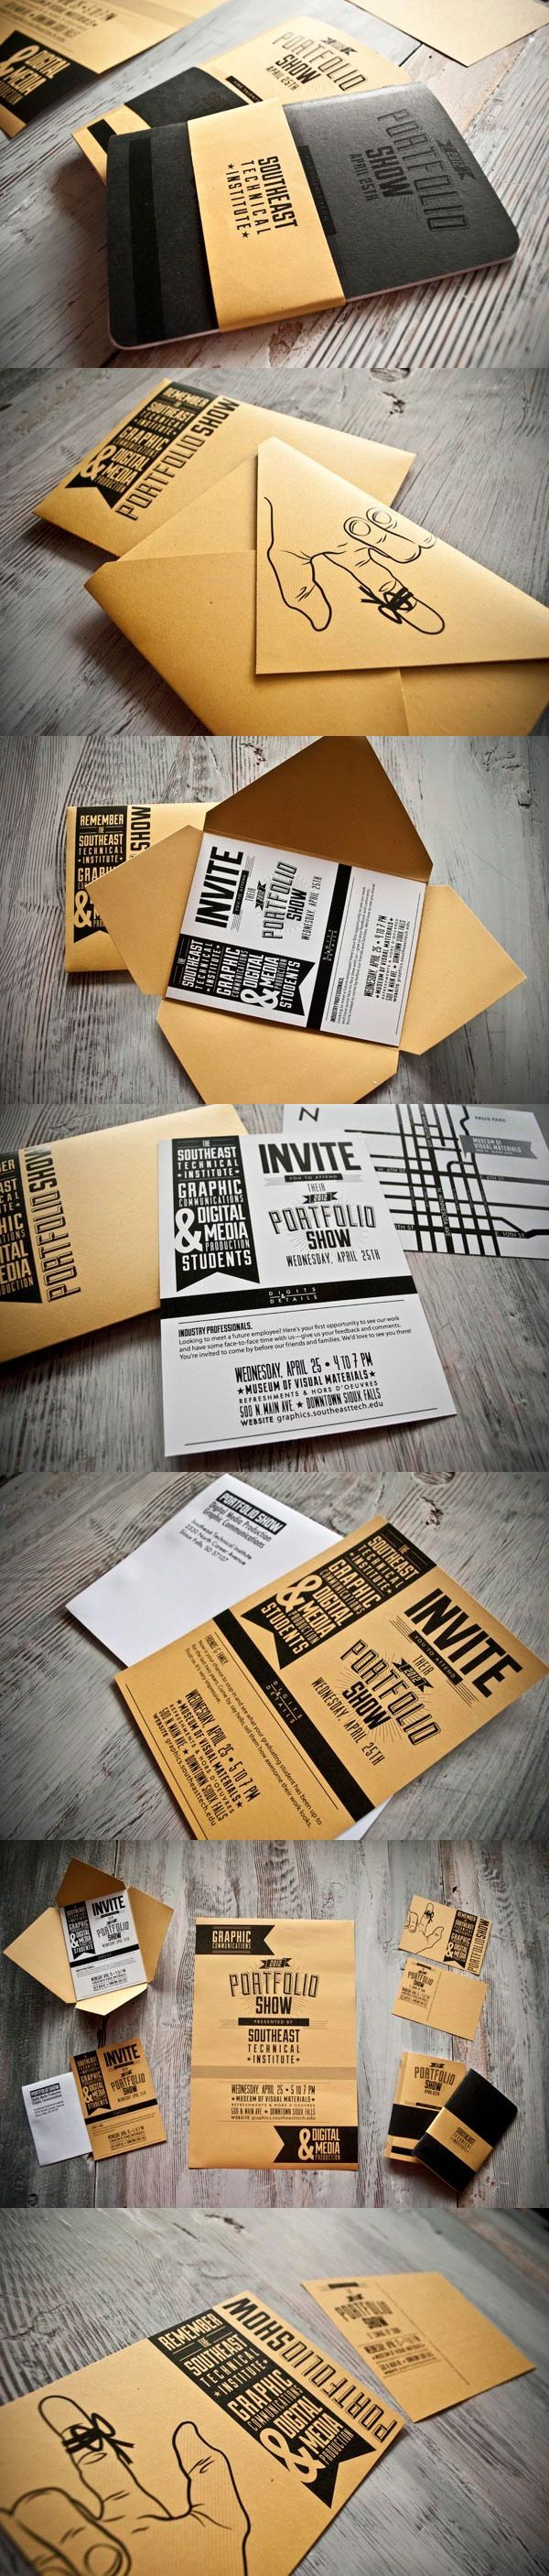 Southeast Technical Institute Portfolio Show  //  #PrintDesign #GraphicDesign #Inspiration: